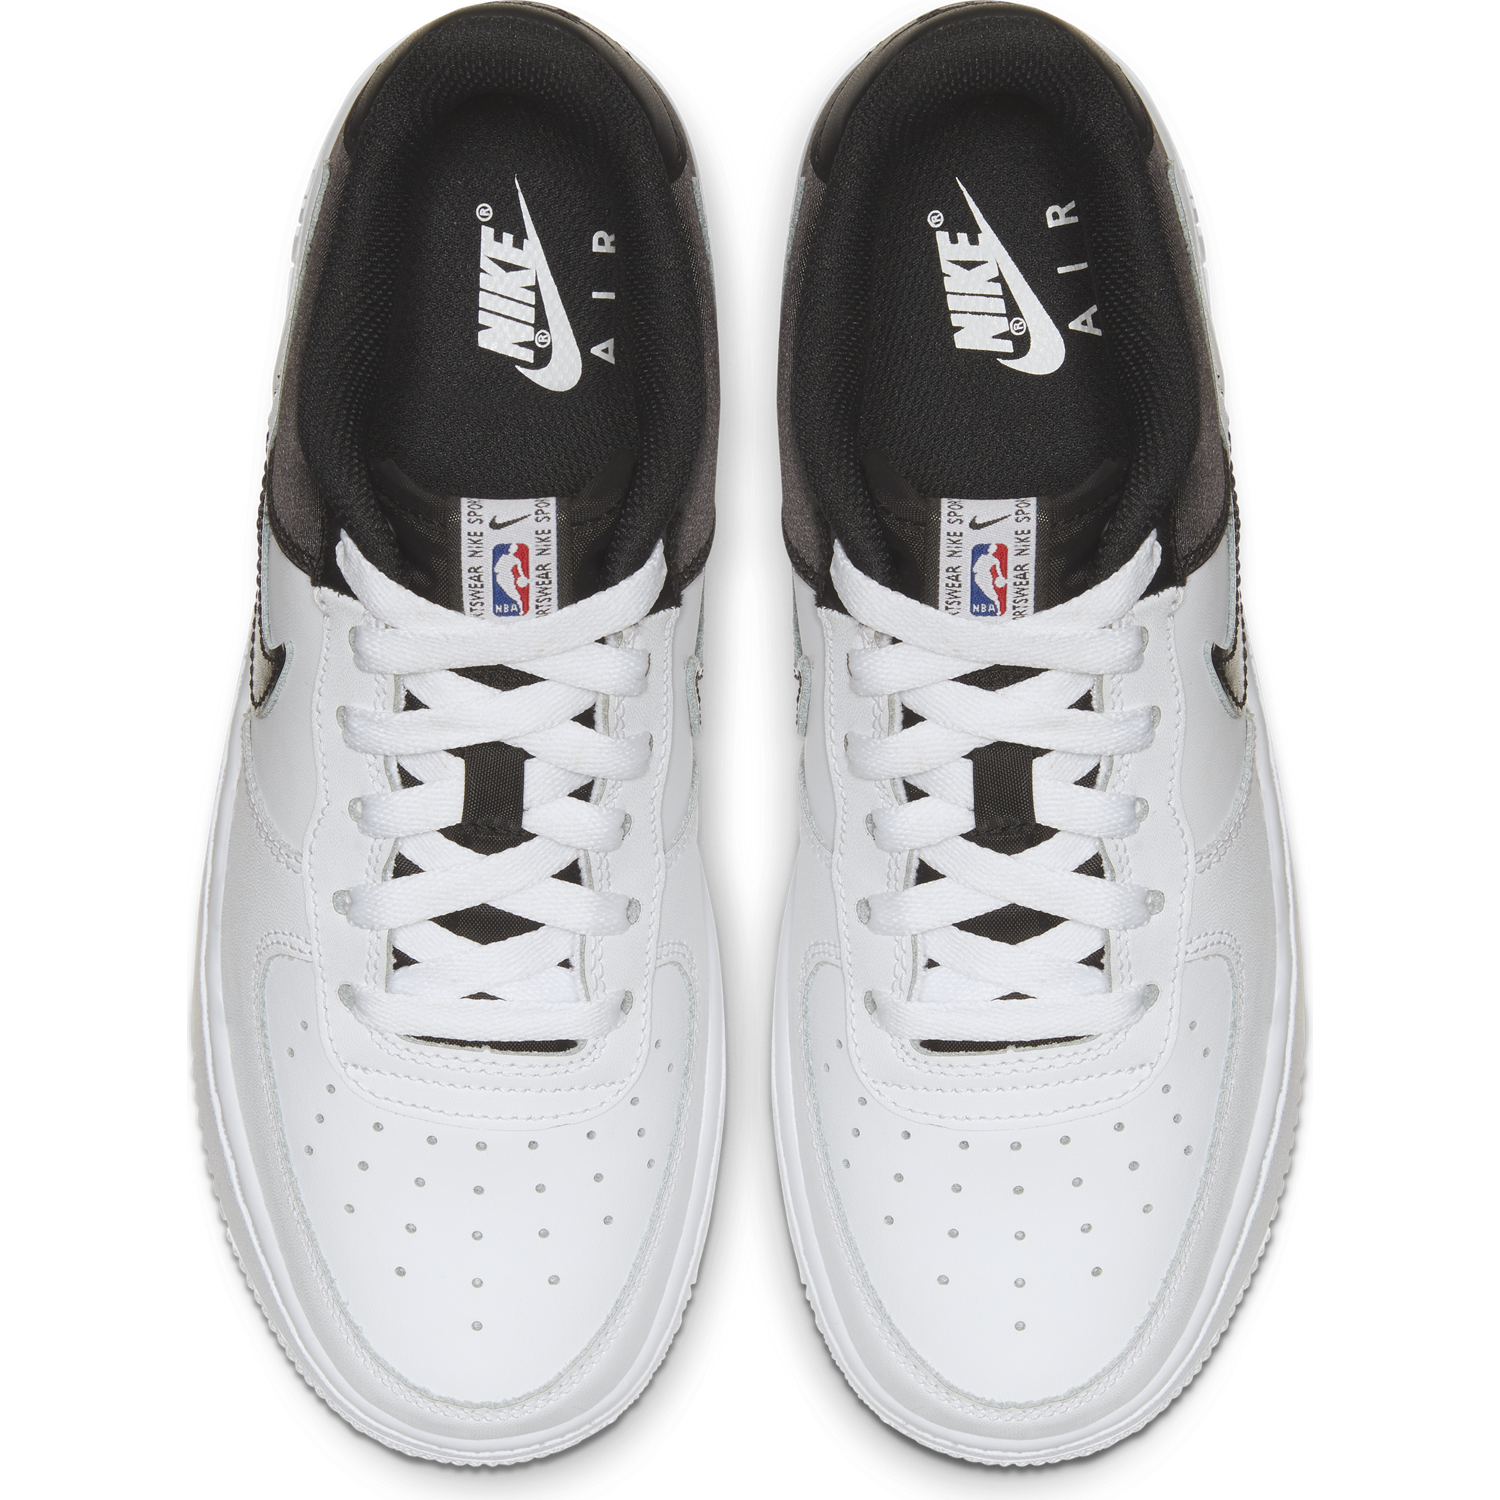 BUTY JUNIOR NIKE AIR FORCE 1 LV8 1 MULTIKOLOR CK0502 100